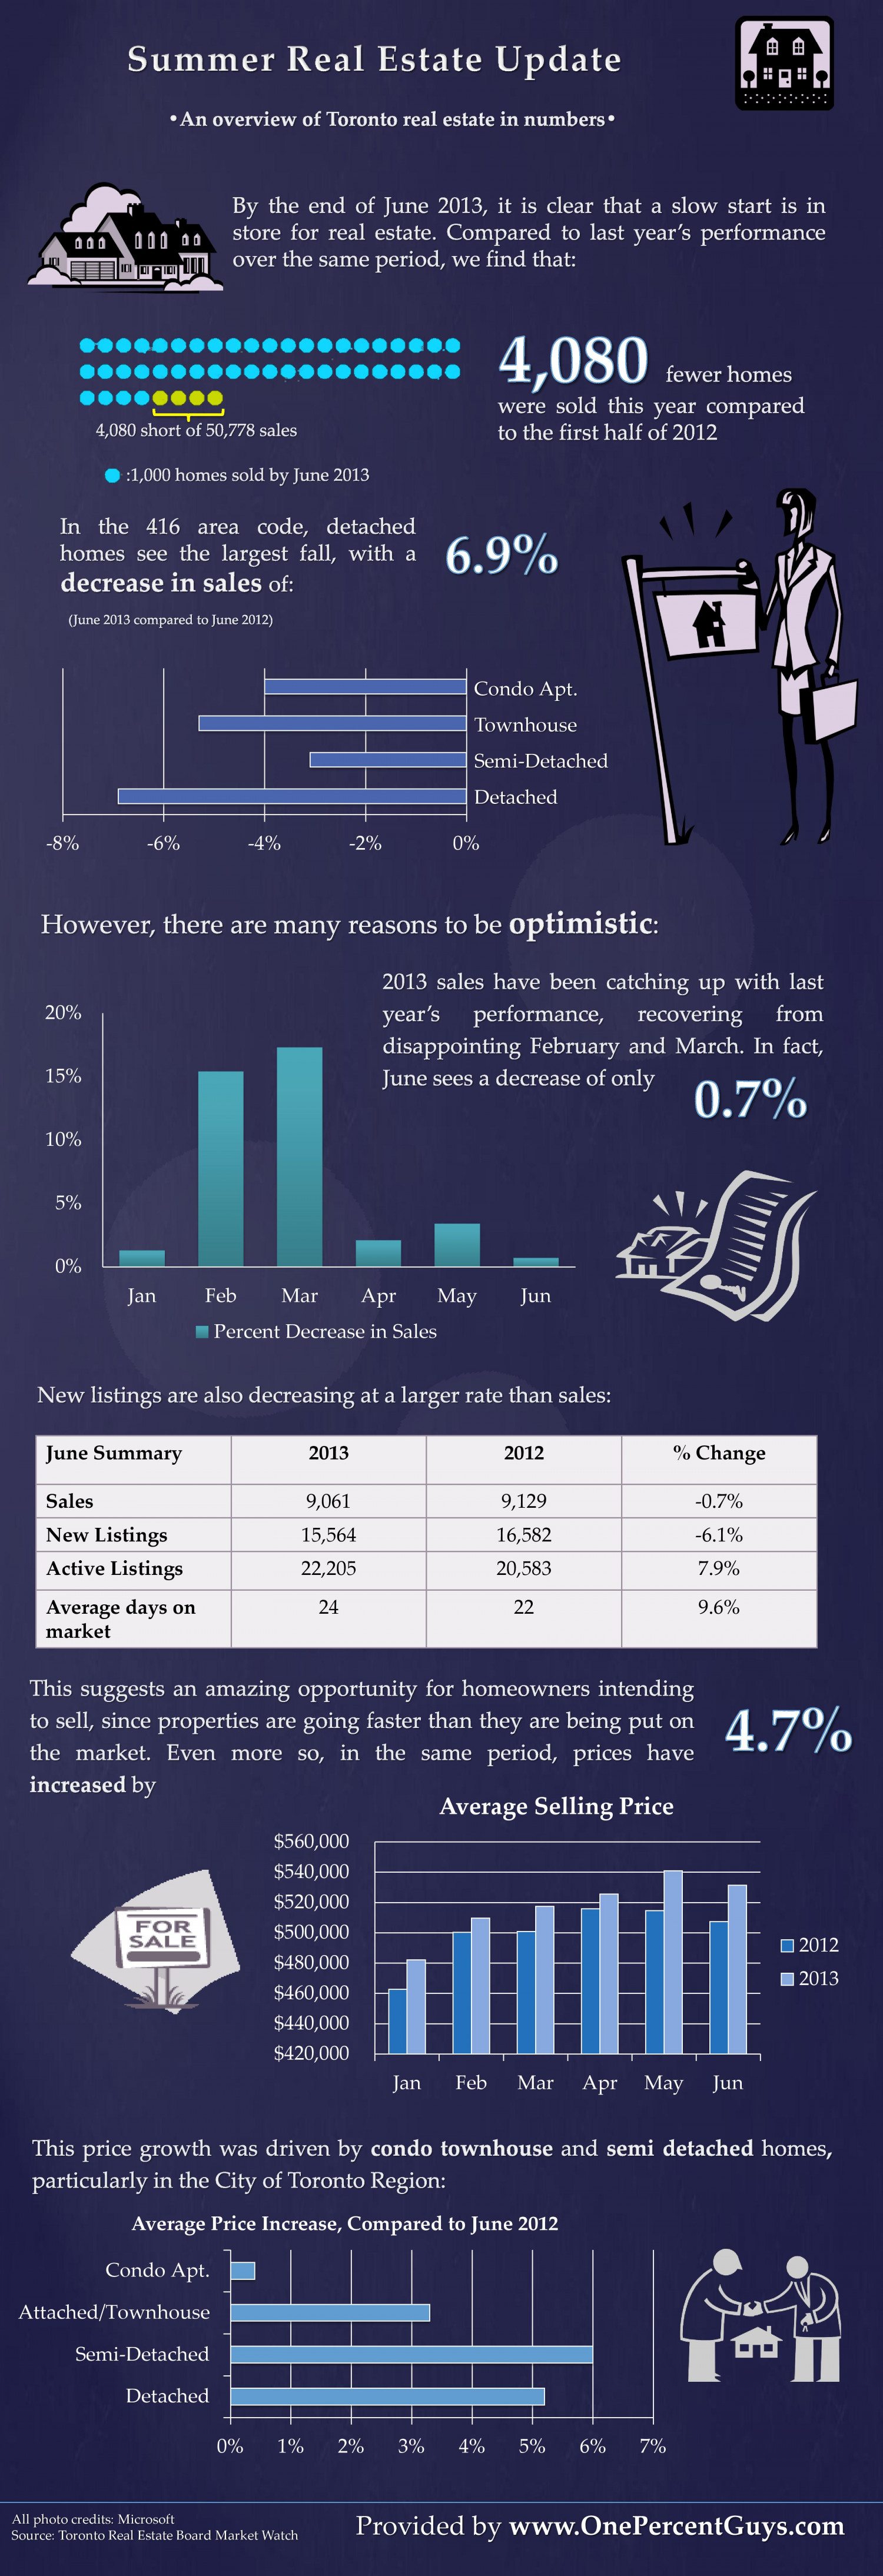 Toronto Real Estate Market (Summer Update) 2013 Infographic